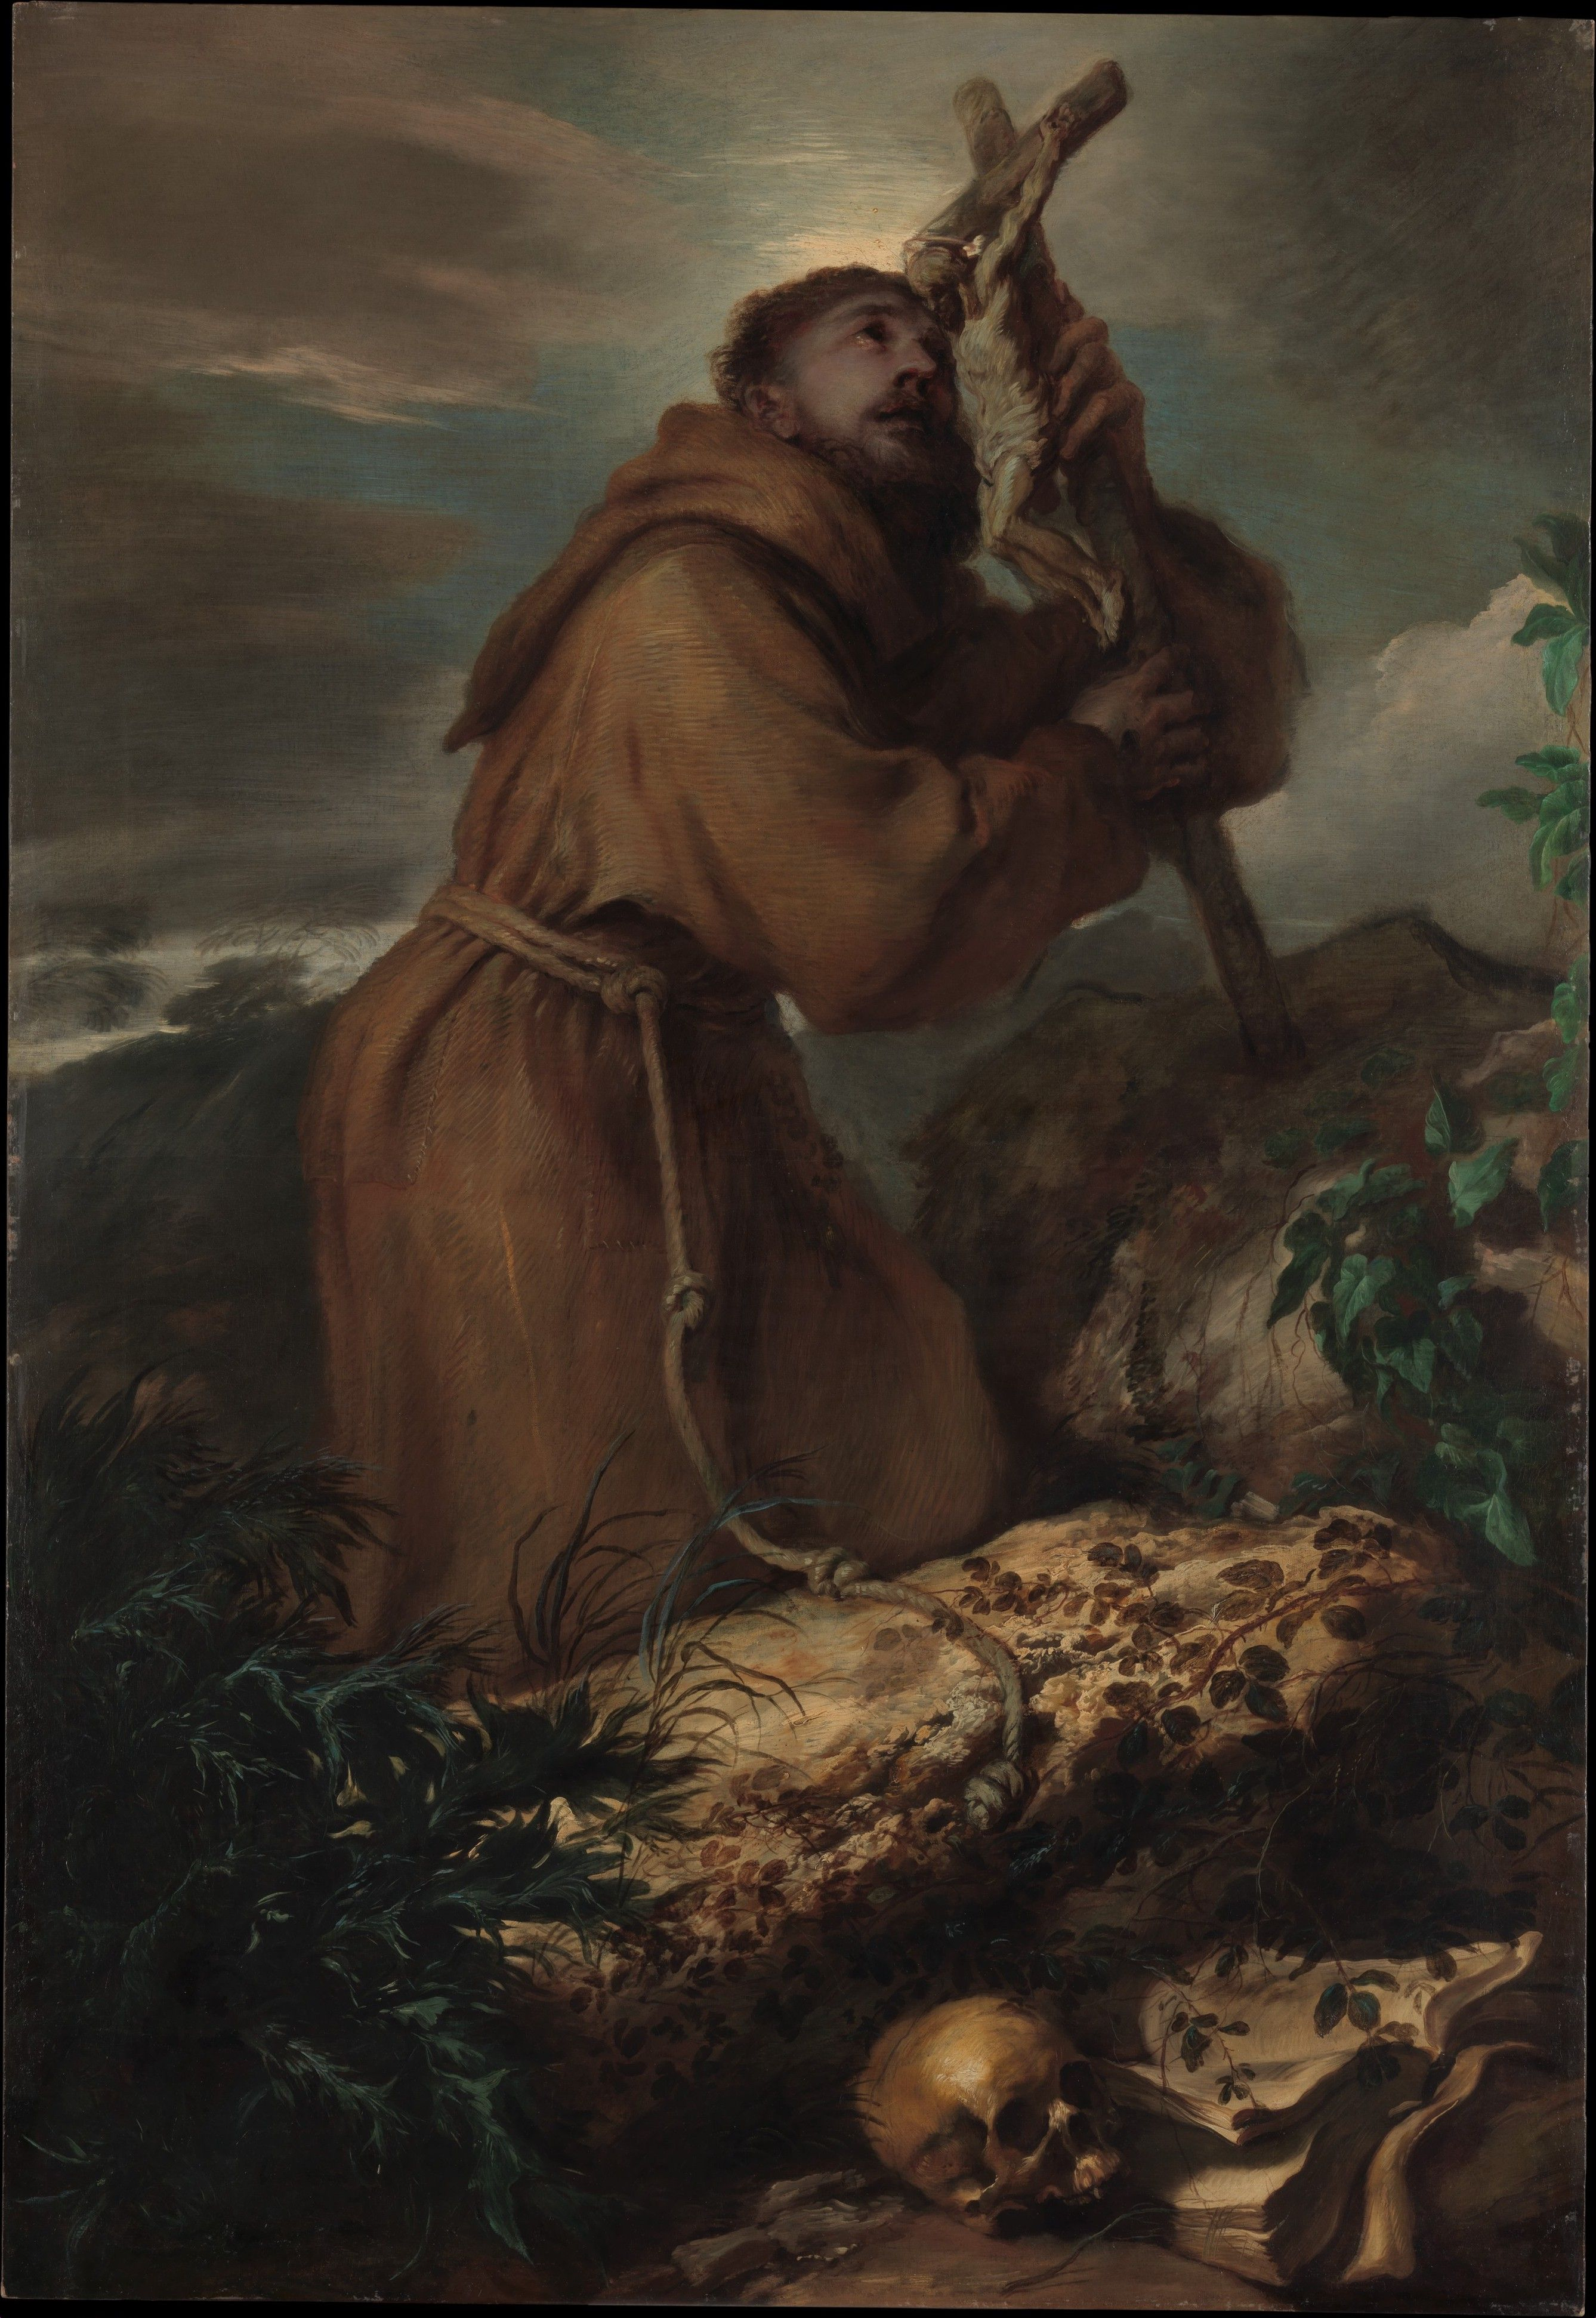 Wearing a Capuchin habit, Saint Francis (1181/1182–1226) is shown on a rocky precipice, silhouetted against an evening sky. He was famously devoted to Christ crucified and is shown in a state of ecstasy. Saint Francis in Ecstasy  Artist:Giovanni Benedetto Castiglione (Il Grechetto) (Italian, Genoa 1609–1664 Mantua) Date:ca. 1650